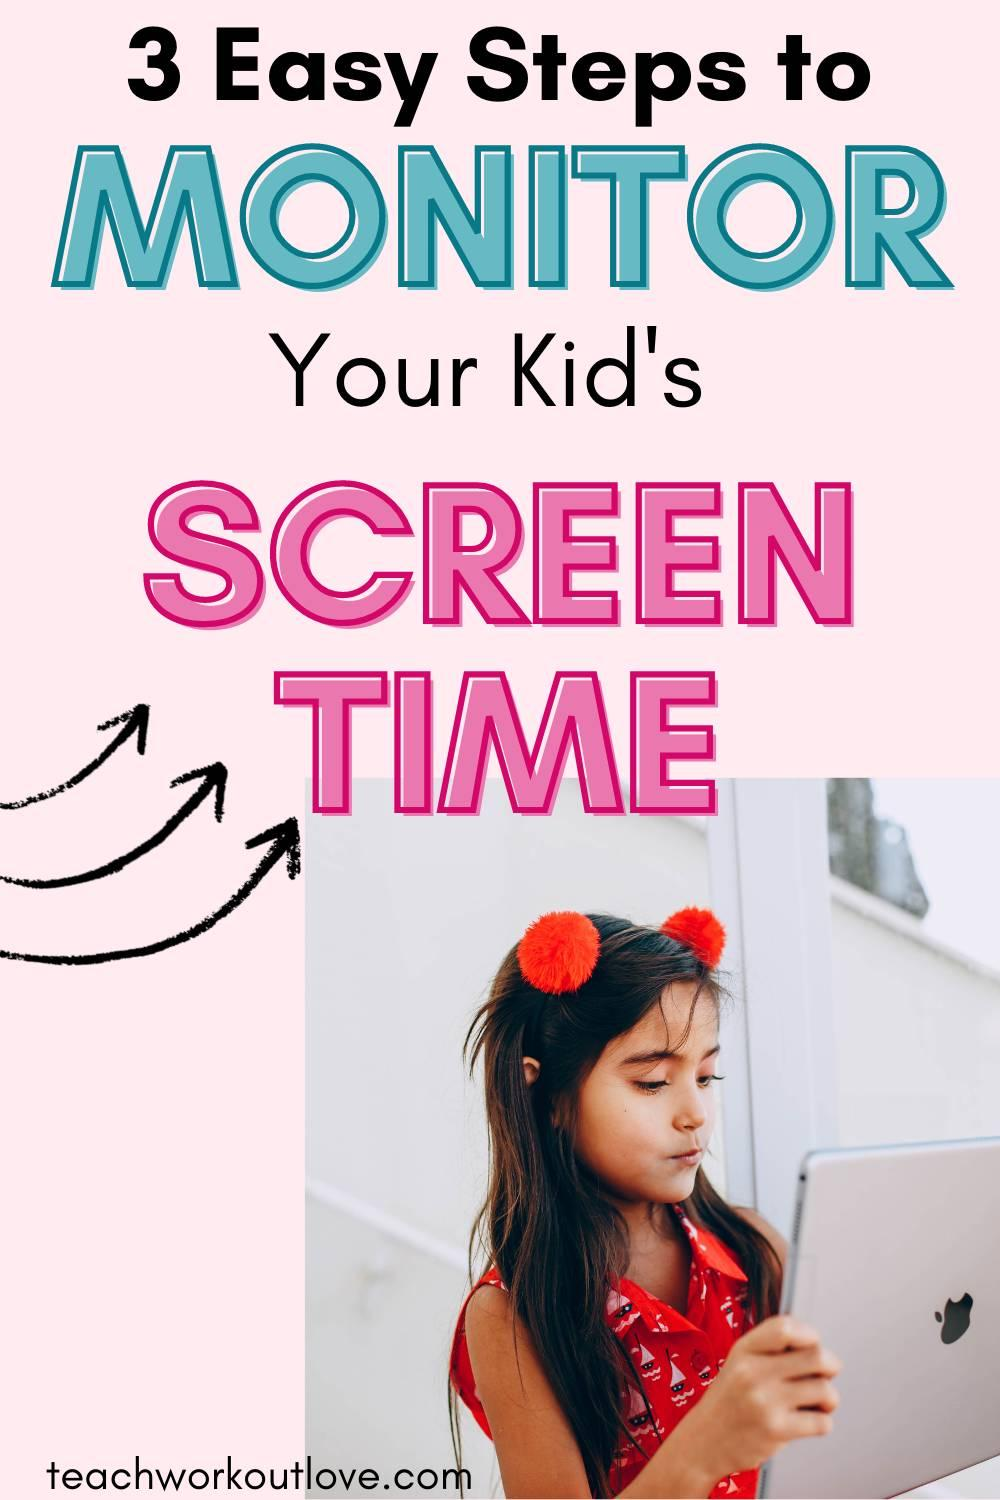 If you are looking for some strategies to help to monitor your kid's screen time in your home, then here are some things to consider.